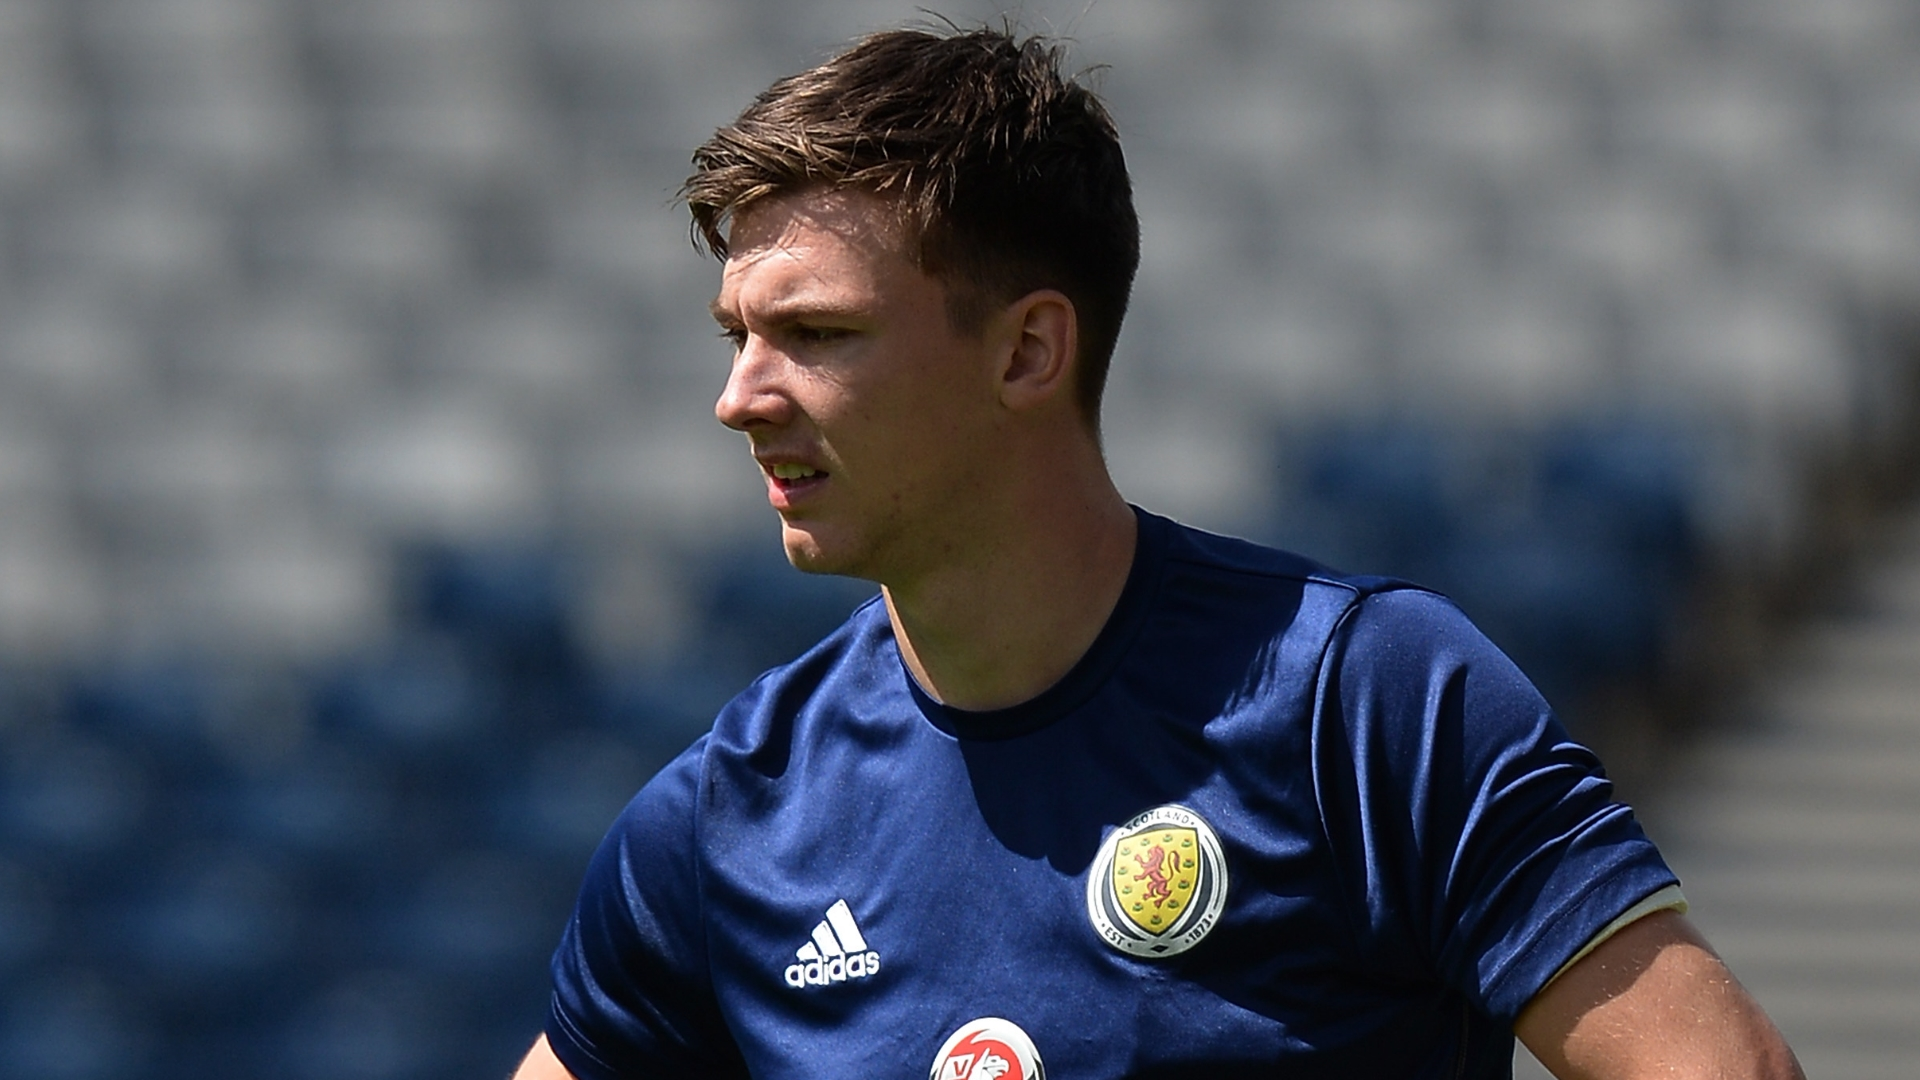 Kieran Tierney, Scotland training